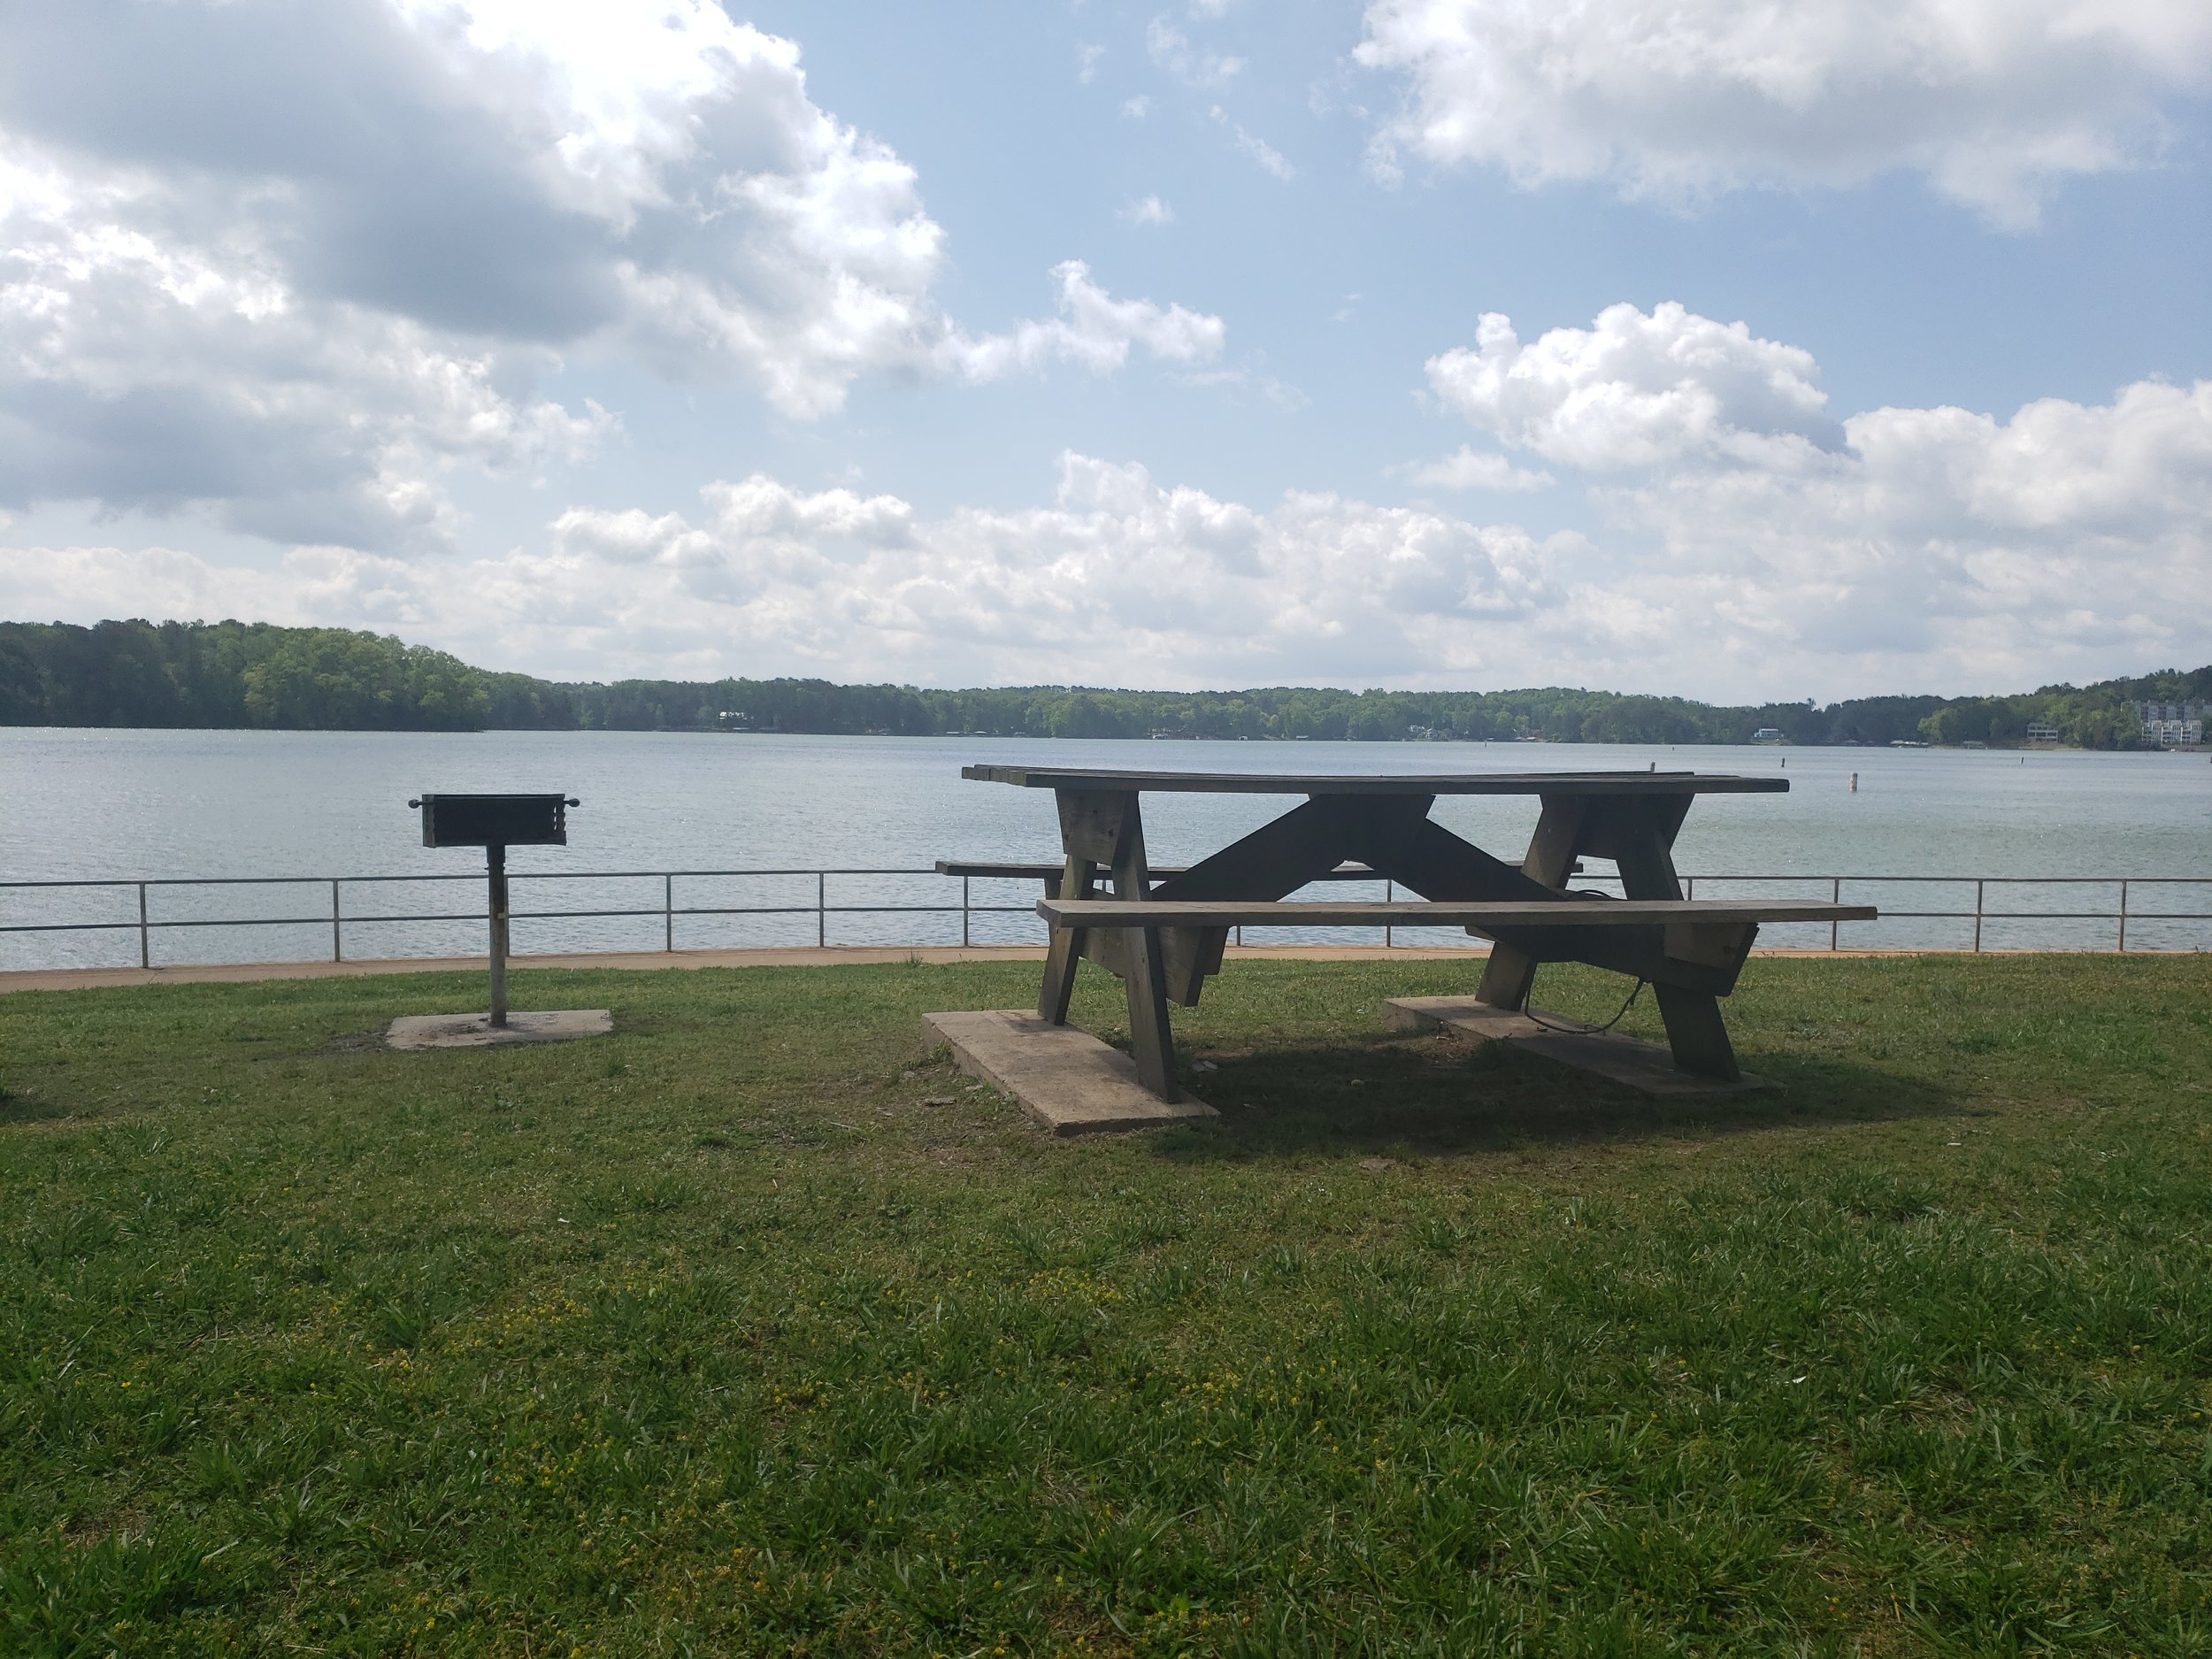 Picnic Tables & Grills - Throughout the park individual picnic tables and grills are available for a lakeside lunch or dinner. Please NO ALCOHOL or PETS ALLOWED in the park.